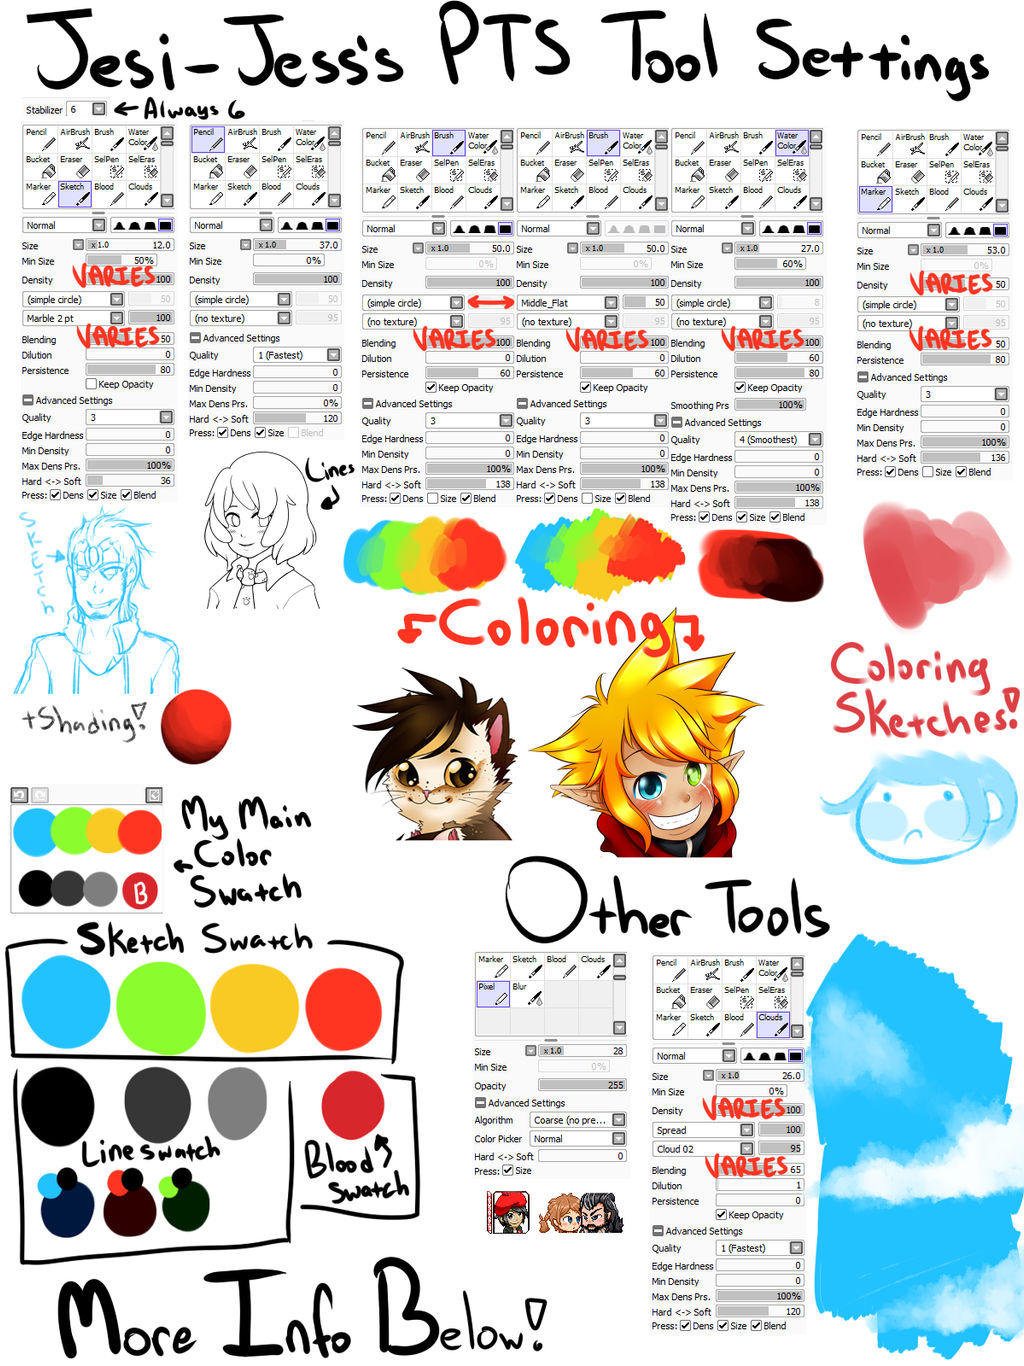 Paint Tool Sai Tools and Swatches v2 by Jesi-Jess